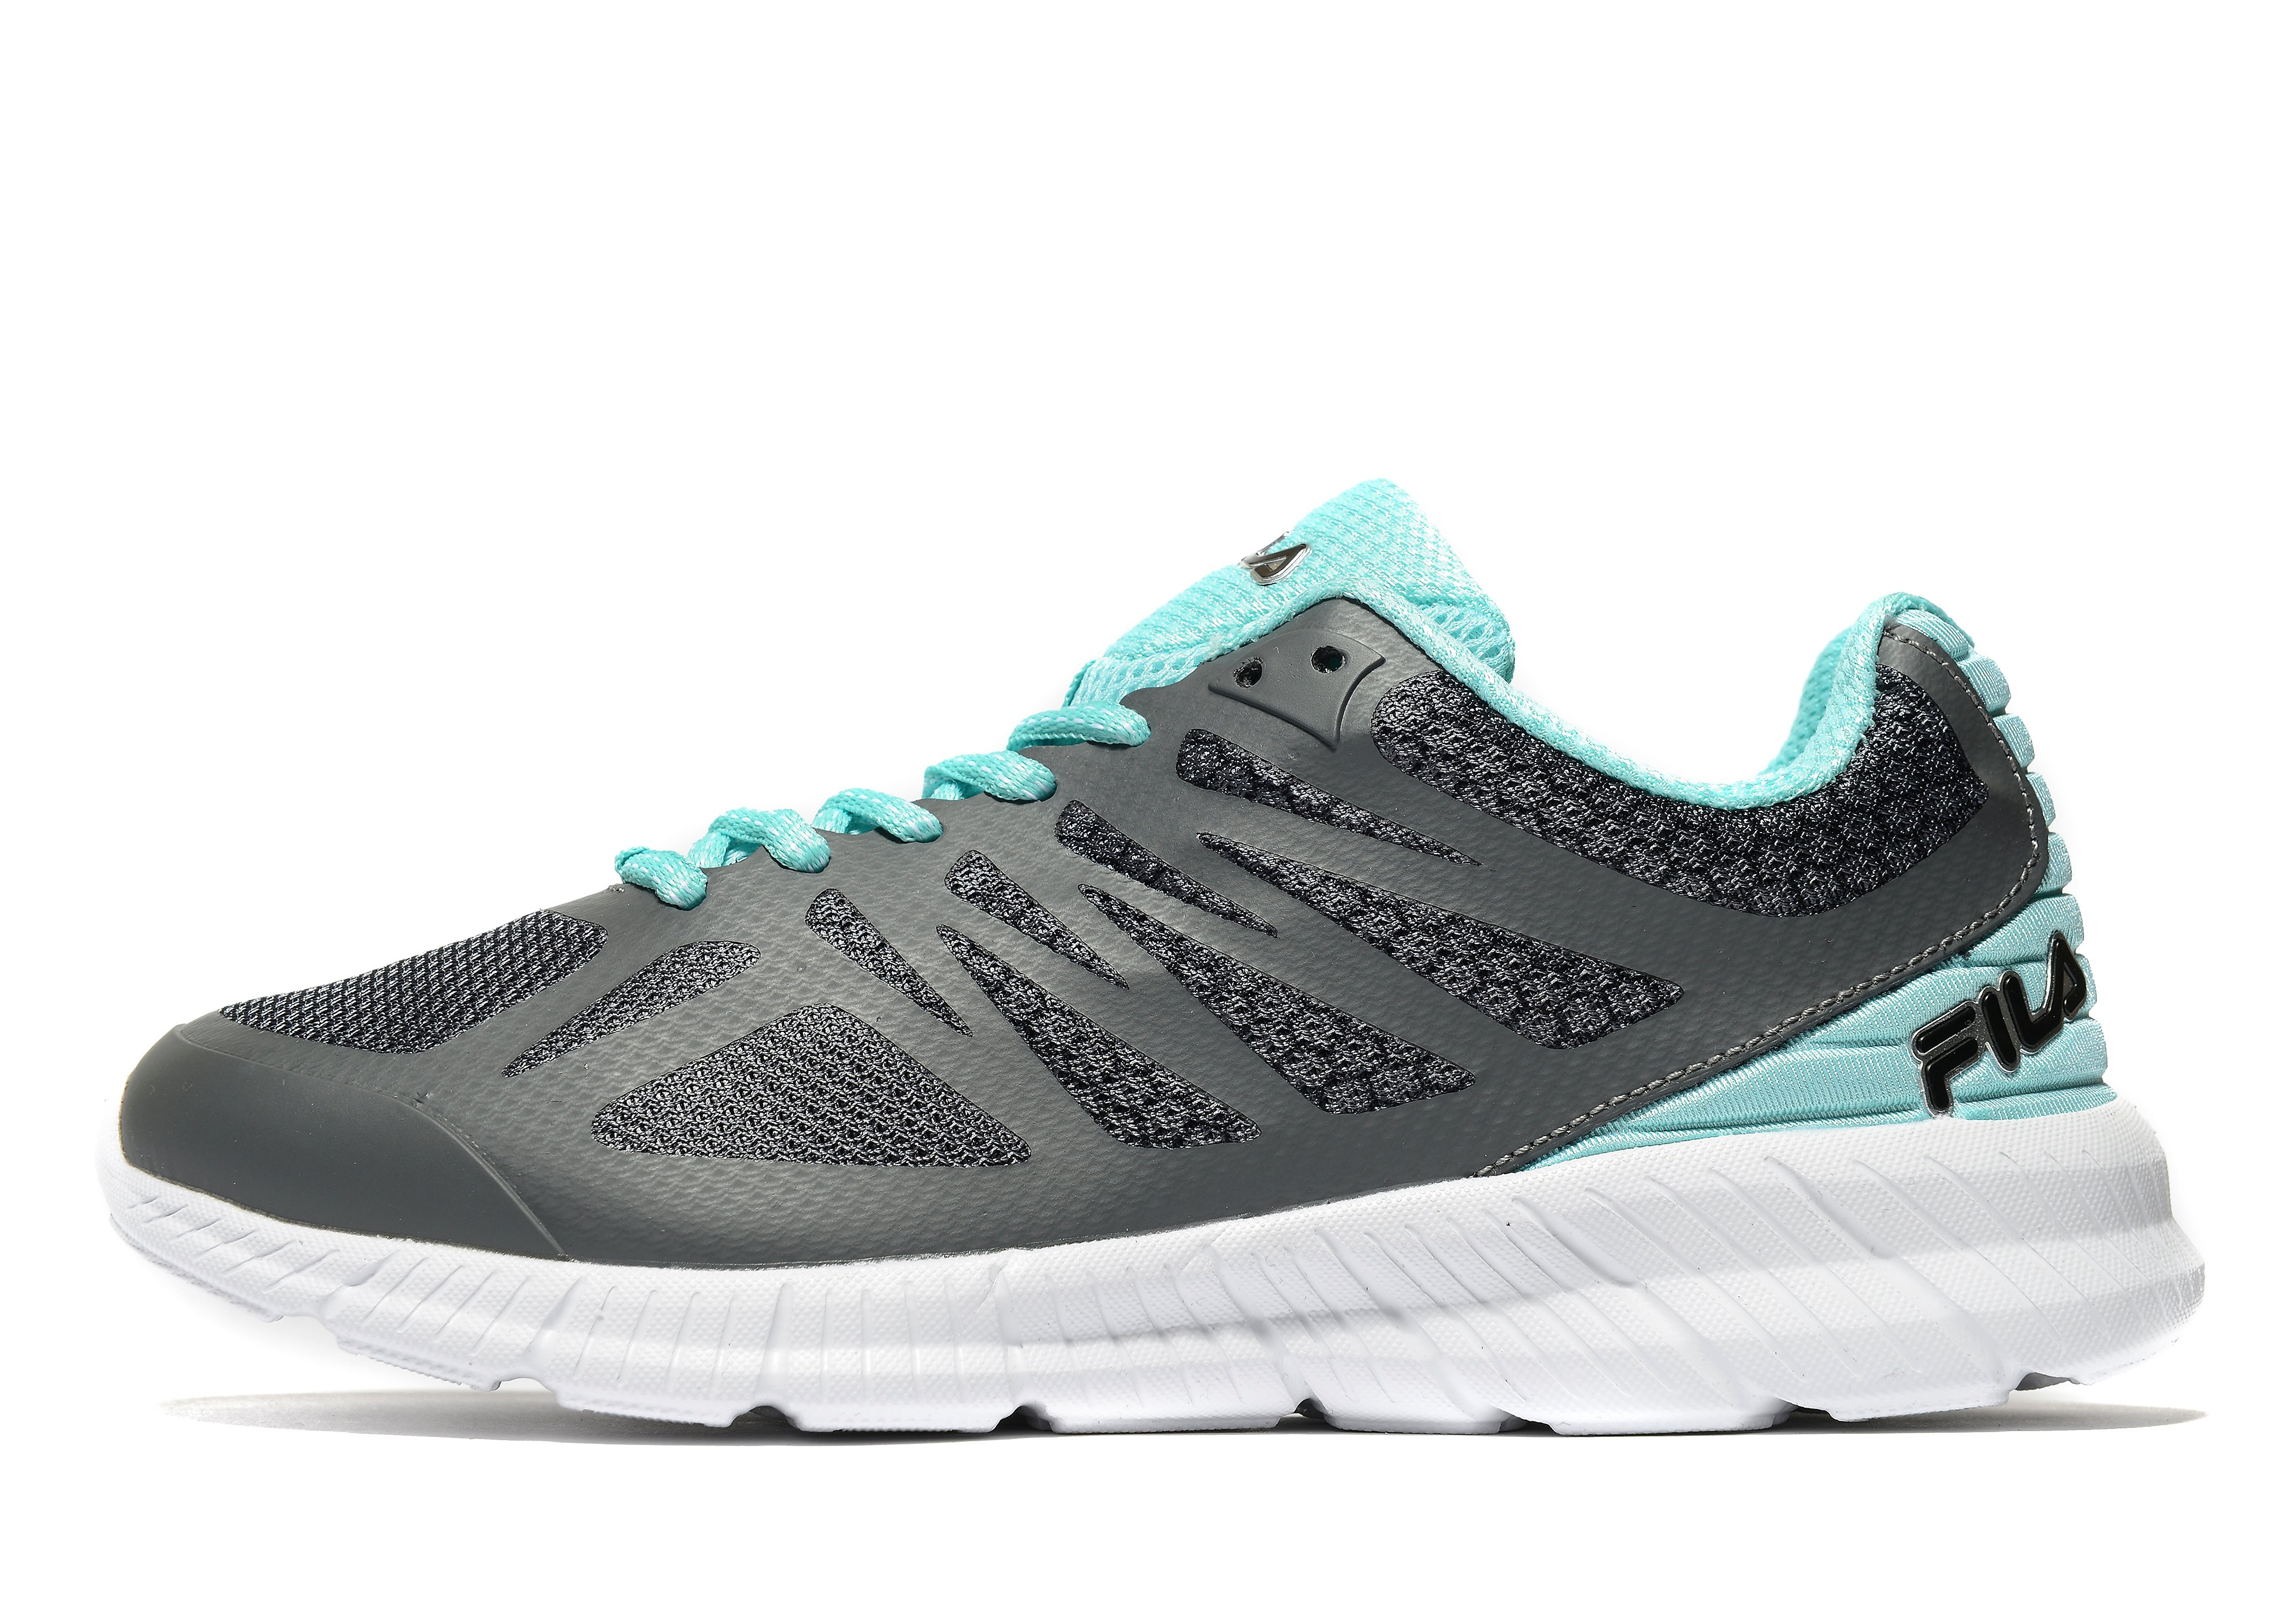 Women's Running Shoes & Trainers at JD Sports